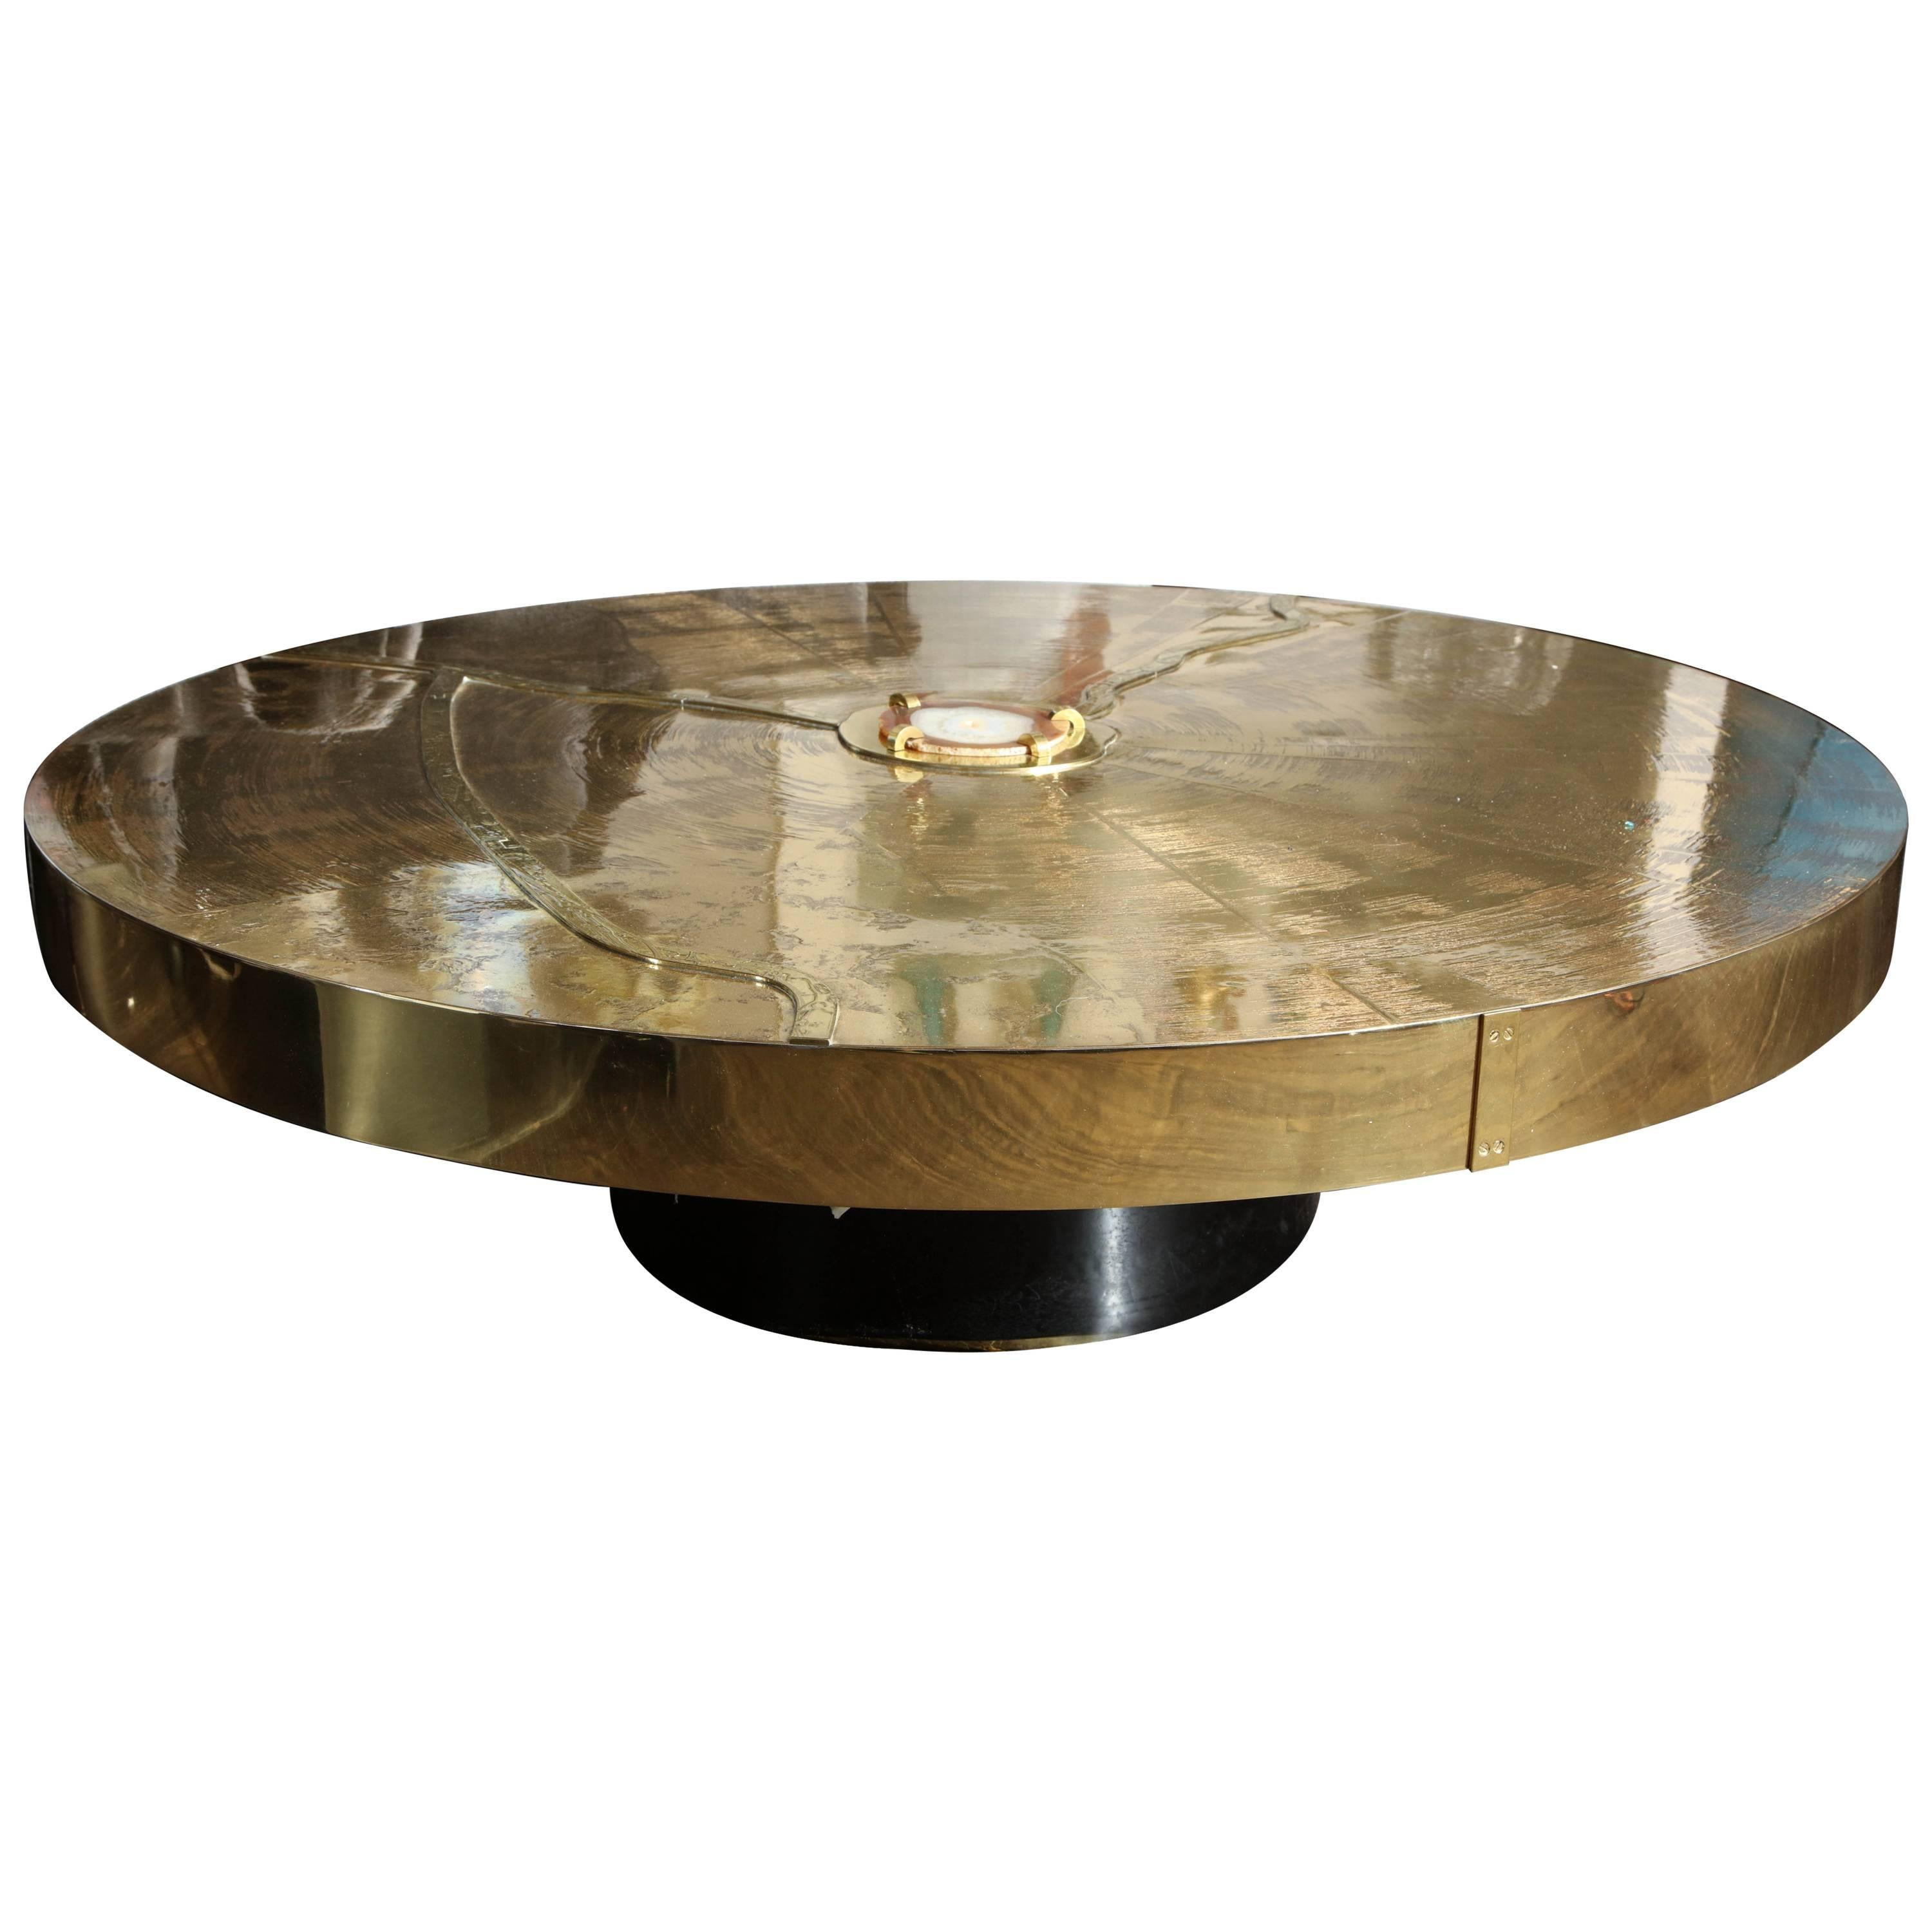 Spectacular Round Etched Brass Cocktail Table With Agate Stone